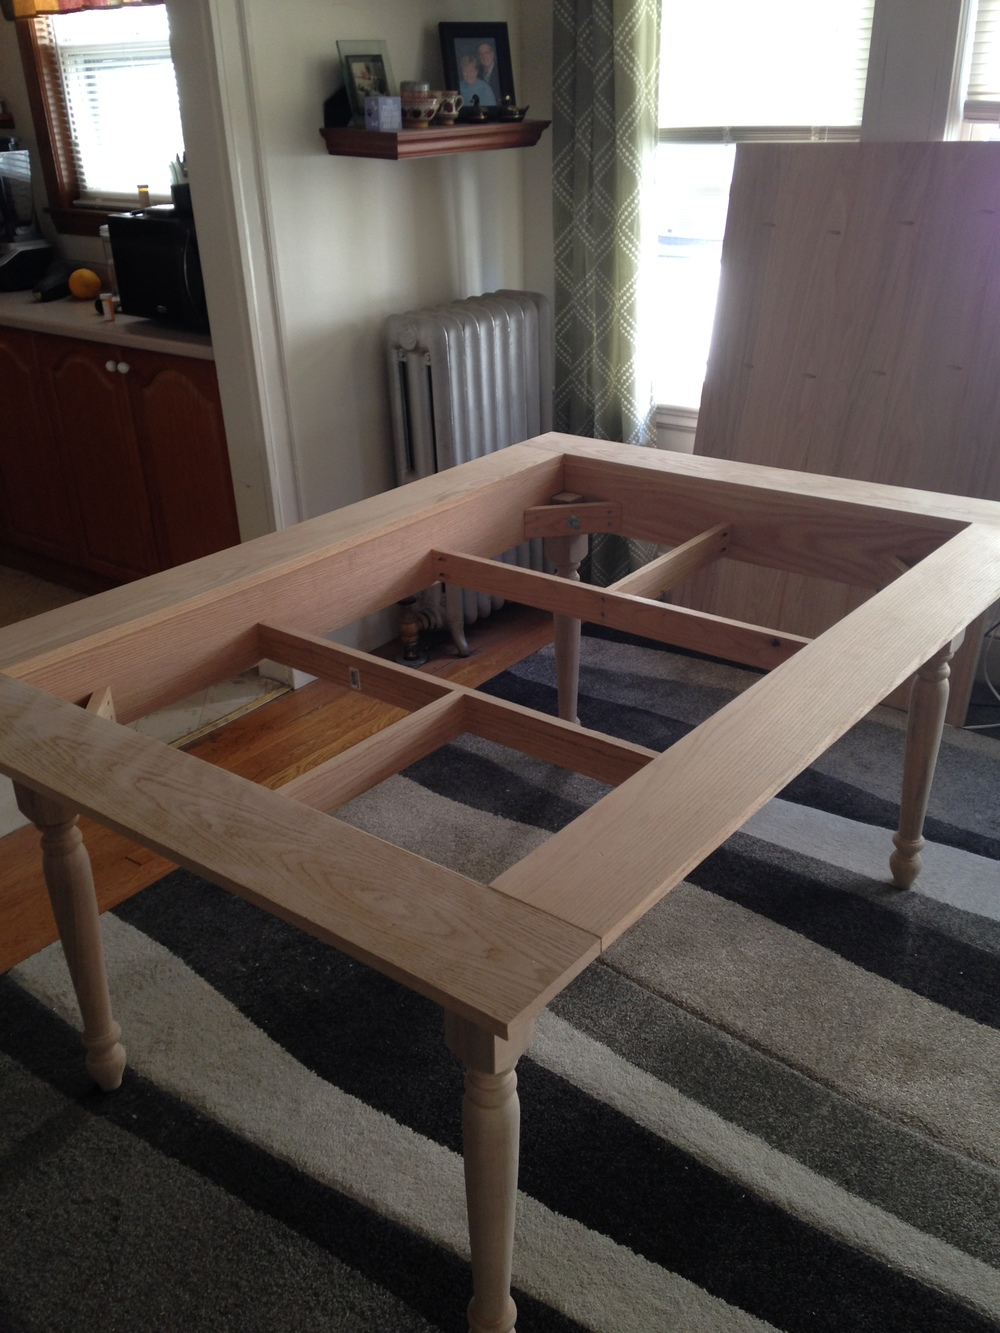 Table framed out